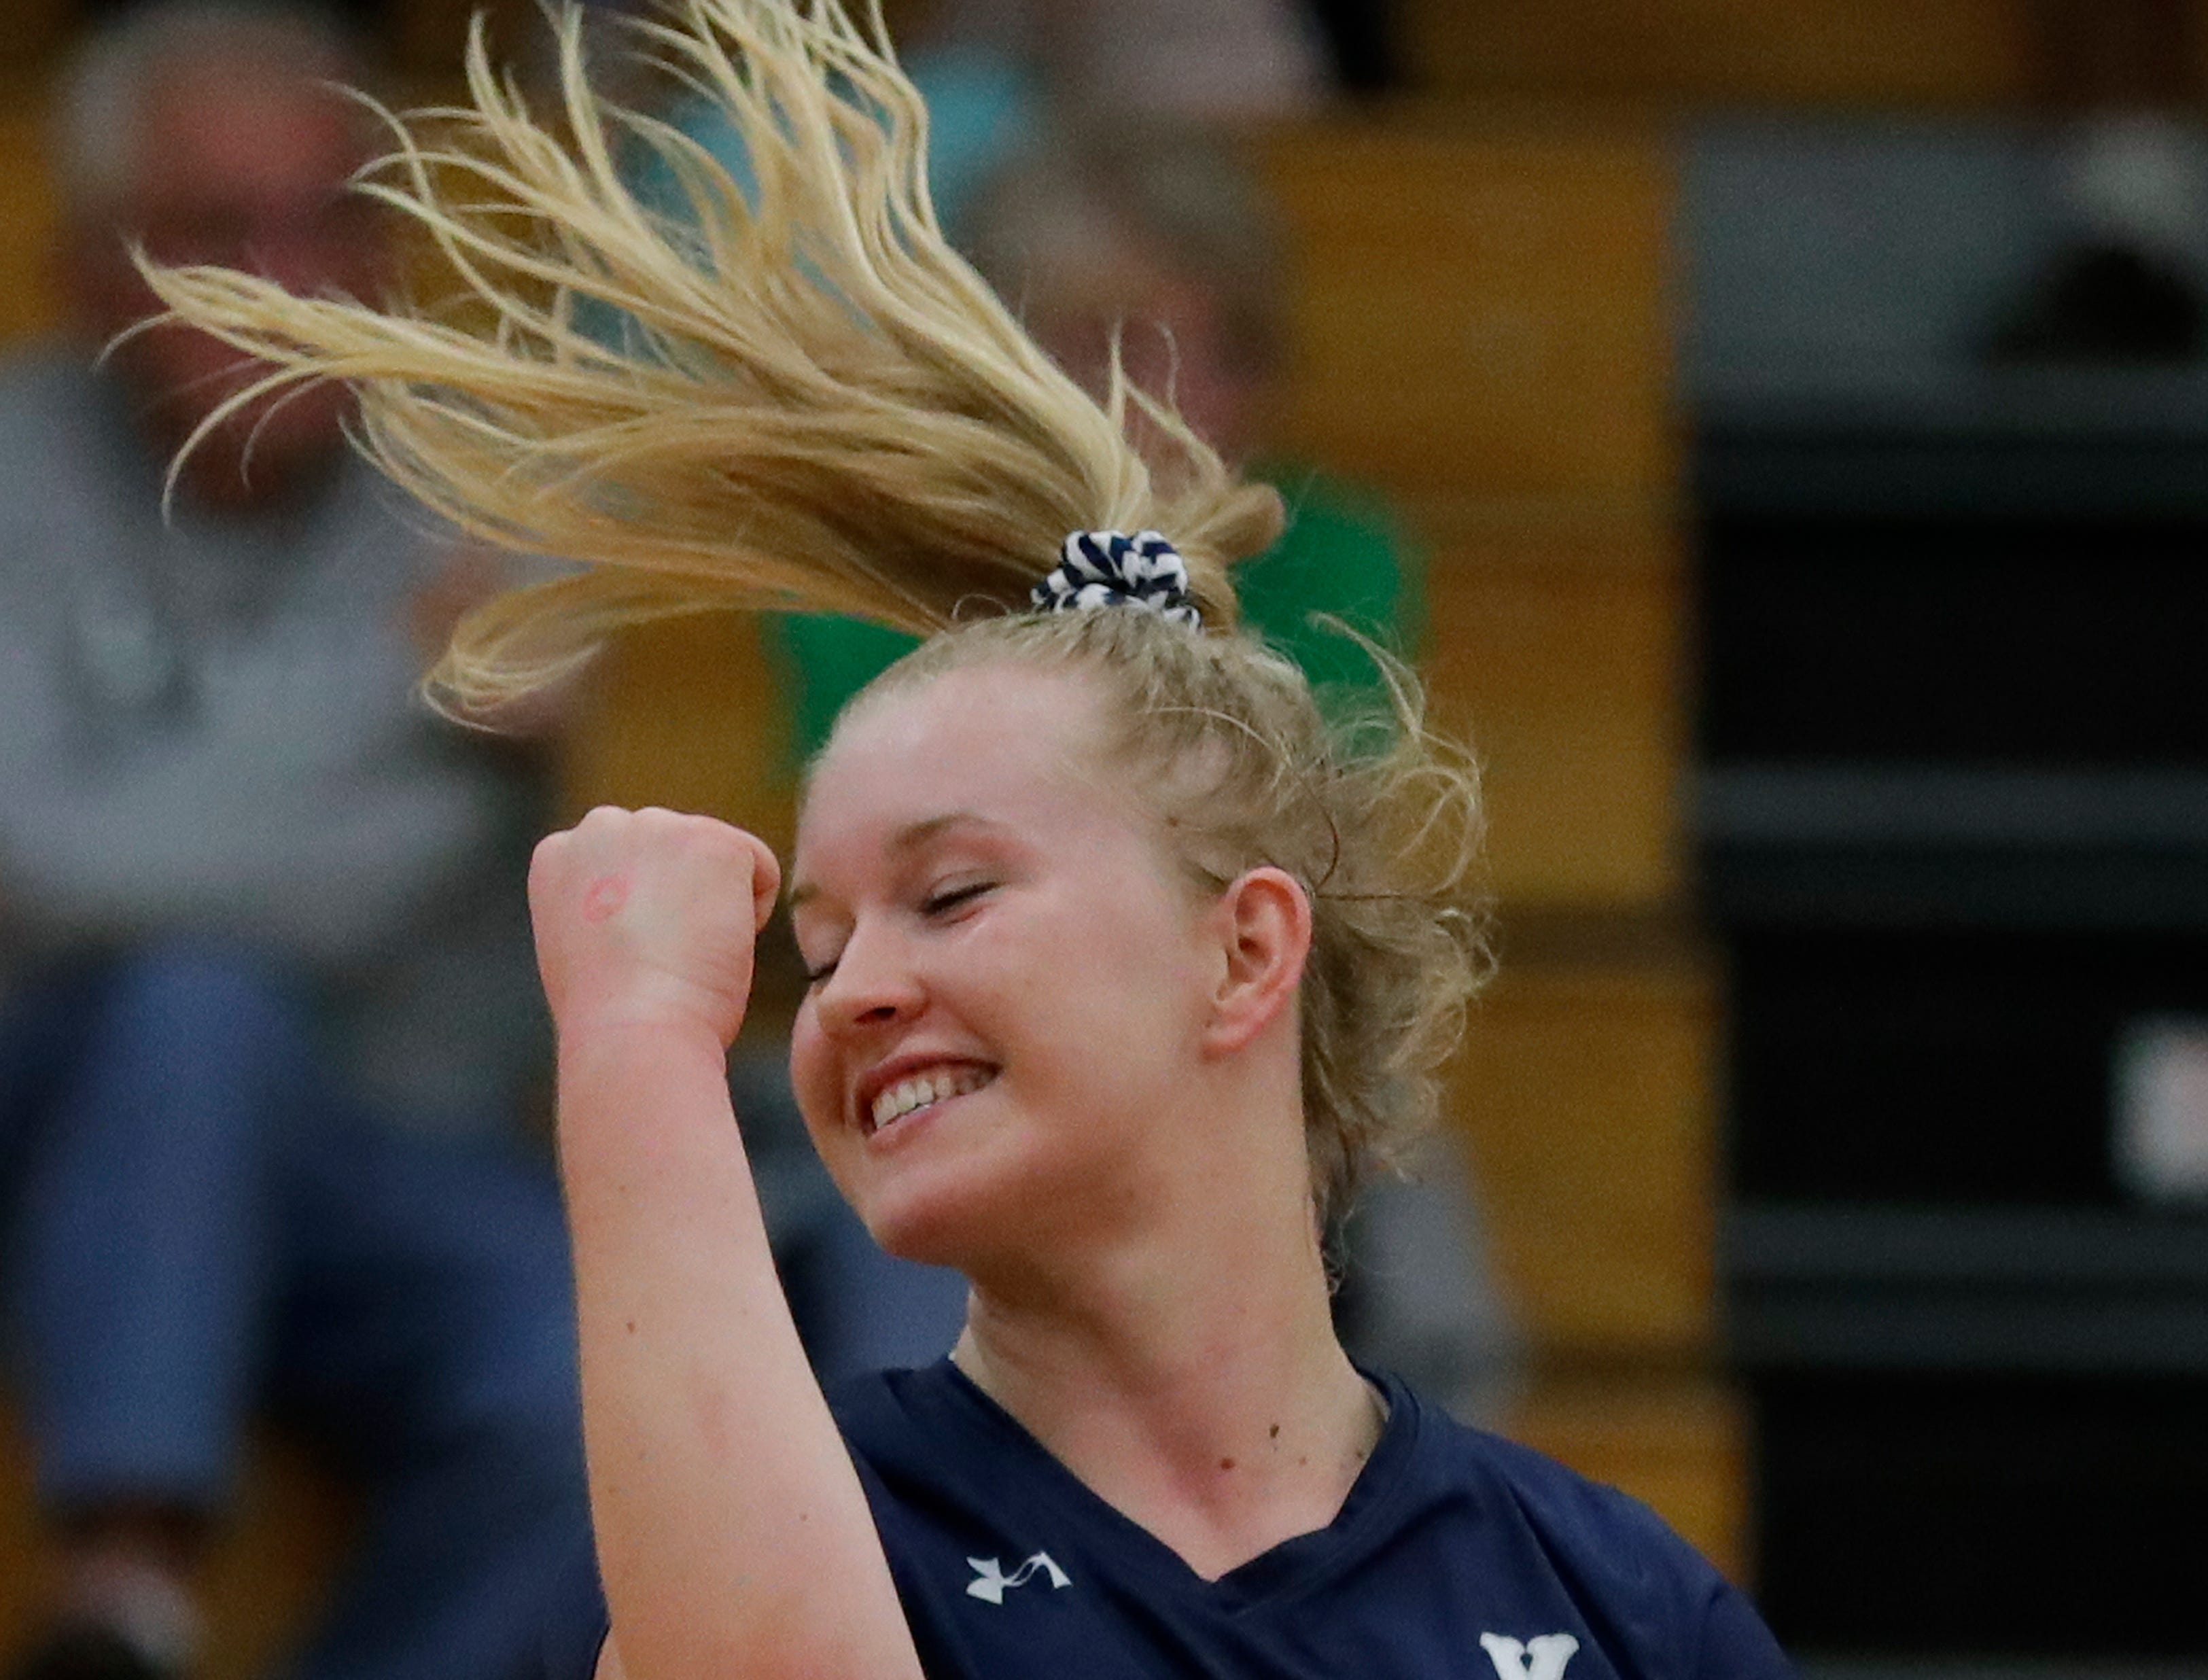 Xavier High School's Emma Oelhafen (10) celebrates winning a point against New London High School during their girls volleyball match Thursday, Sept. 13, 2018, in Appleton, Wis. 